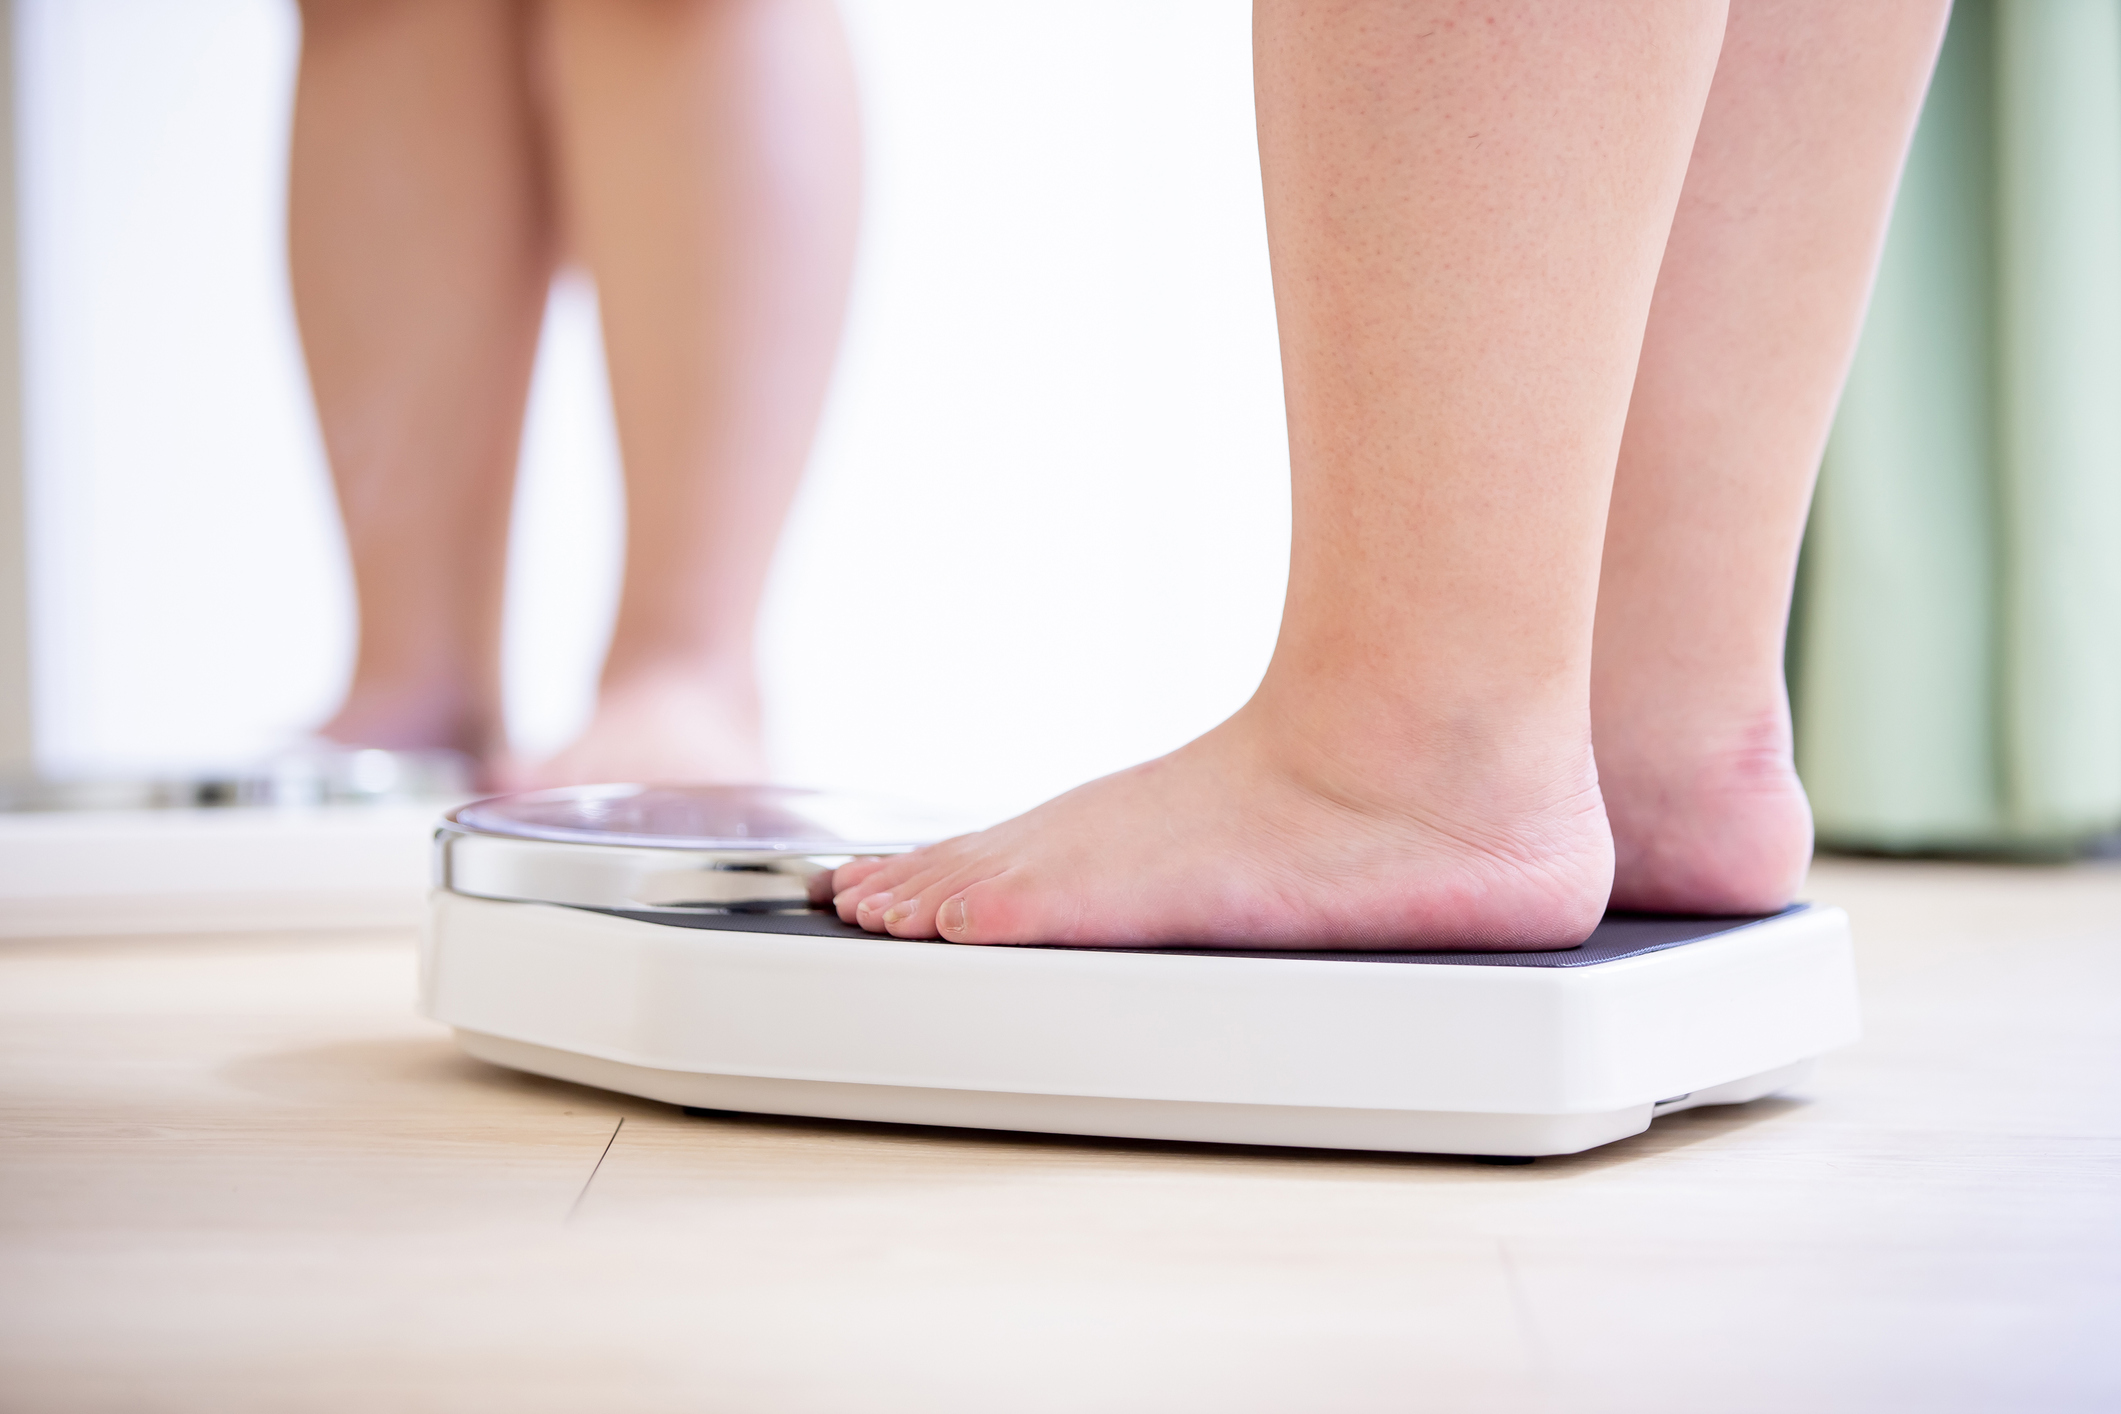 Study suggests microbiome could be key to losing weight